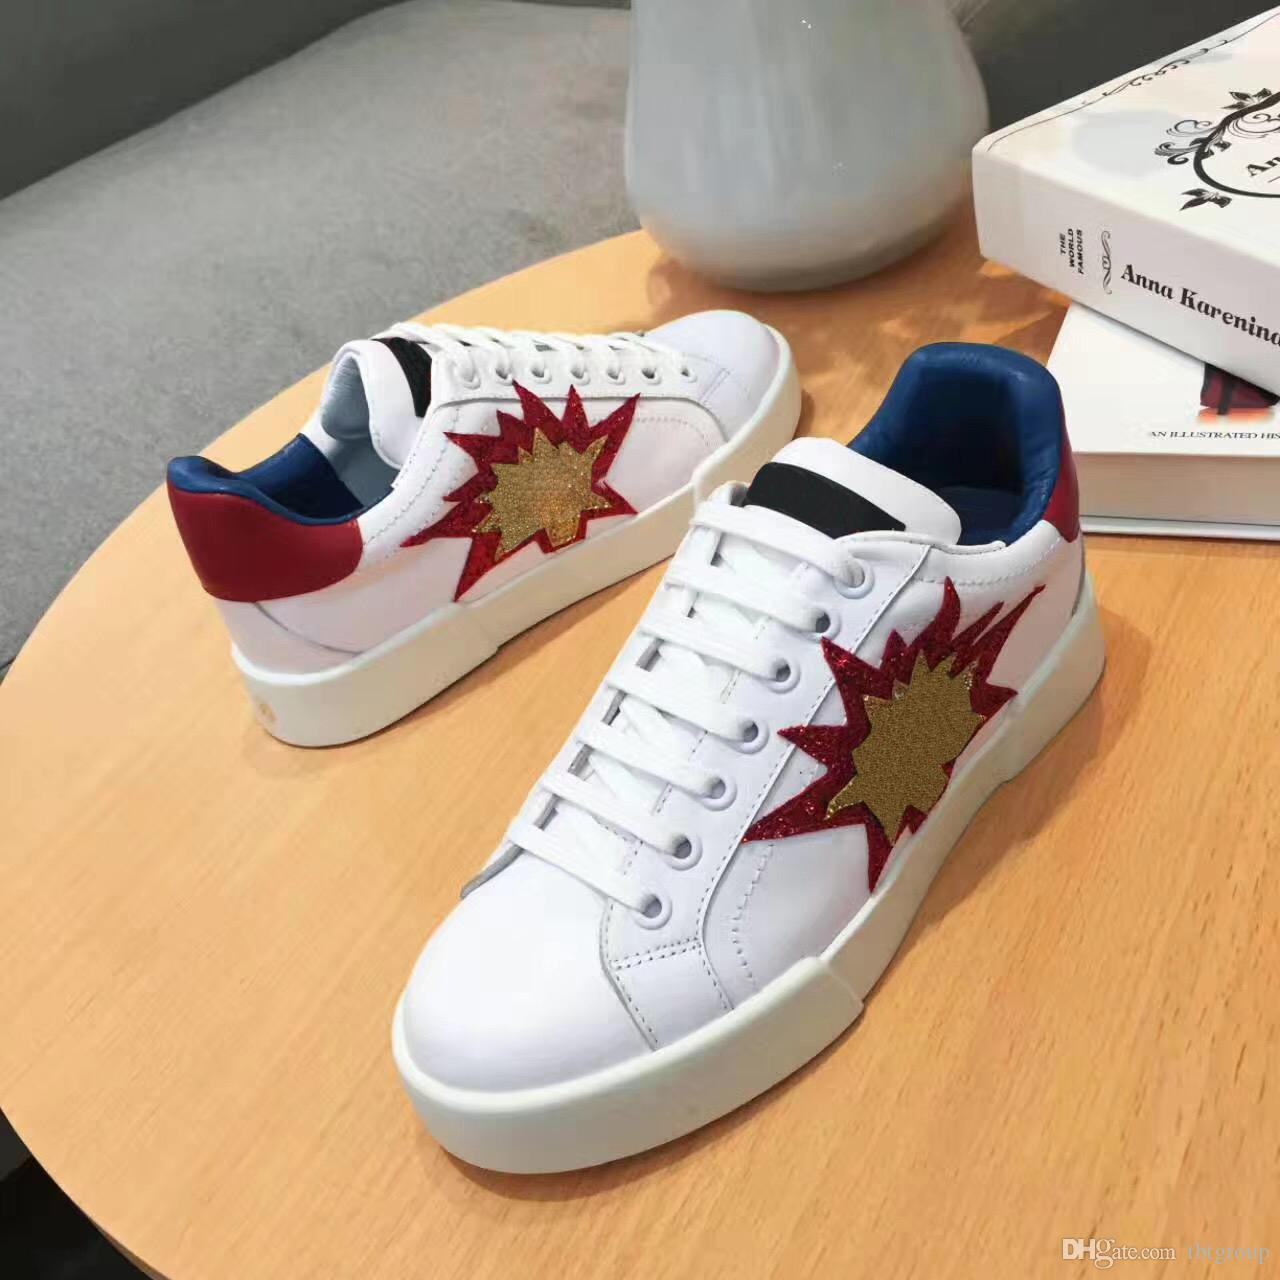 020367eca35 Brands Designer Sneakers Lace Up Genuine Leather White Shoes Women Classic  Casual Shoes BEST QUALITY SZ 5 10 Most Comfortable Shoes High Top Shoes  From ...